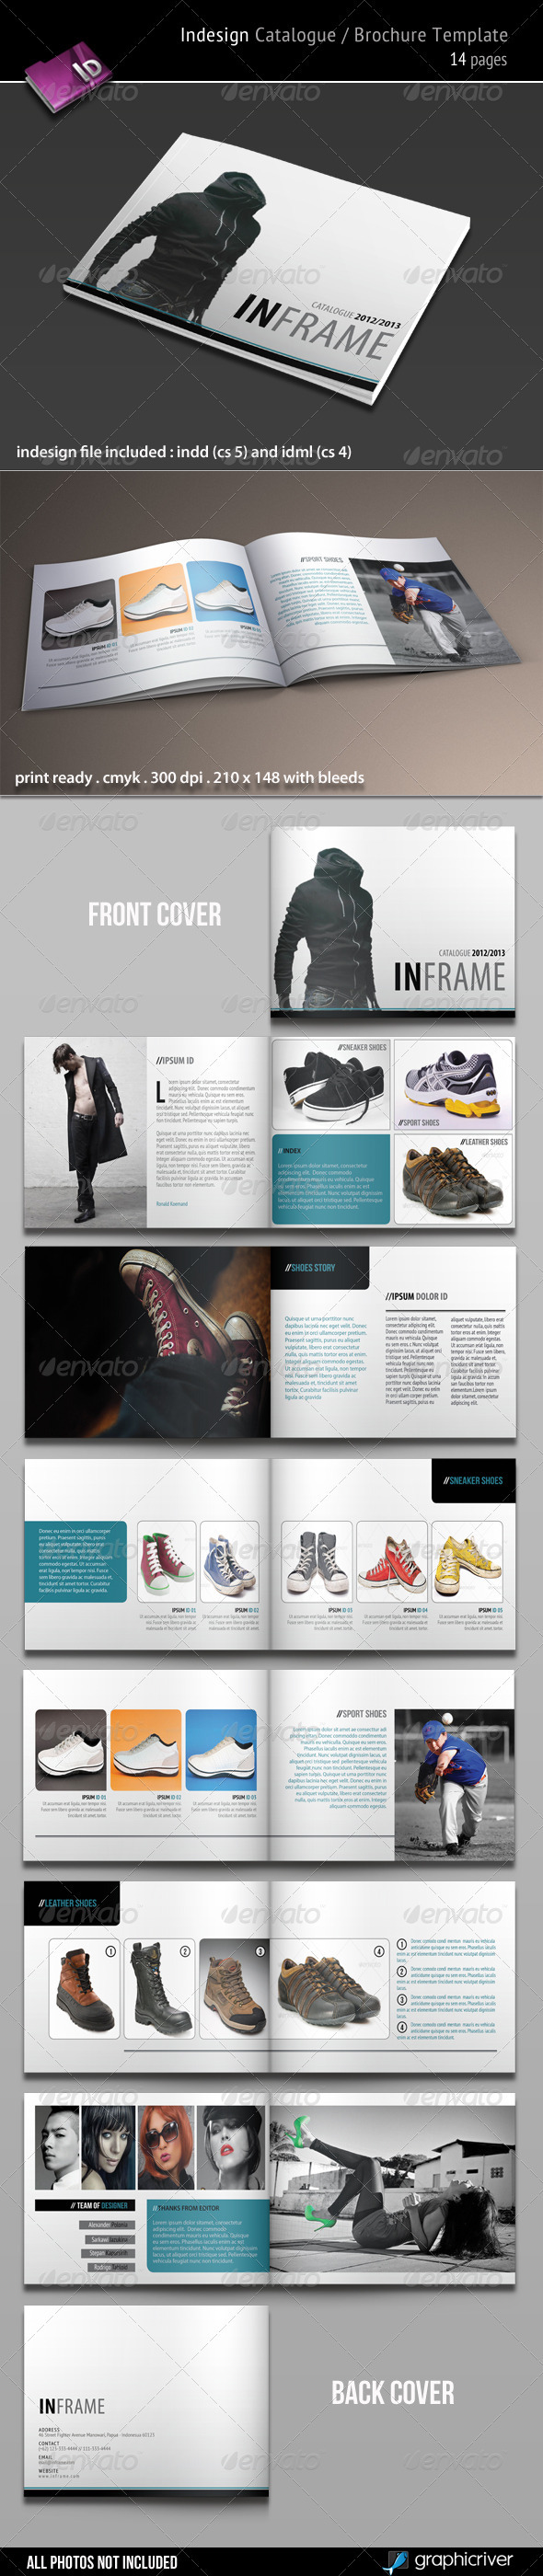 GraphicRiver Indesign Catalogue Brochure Template 3395390